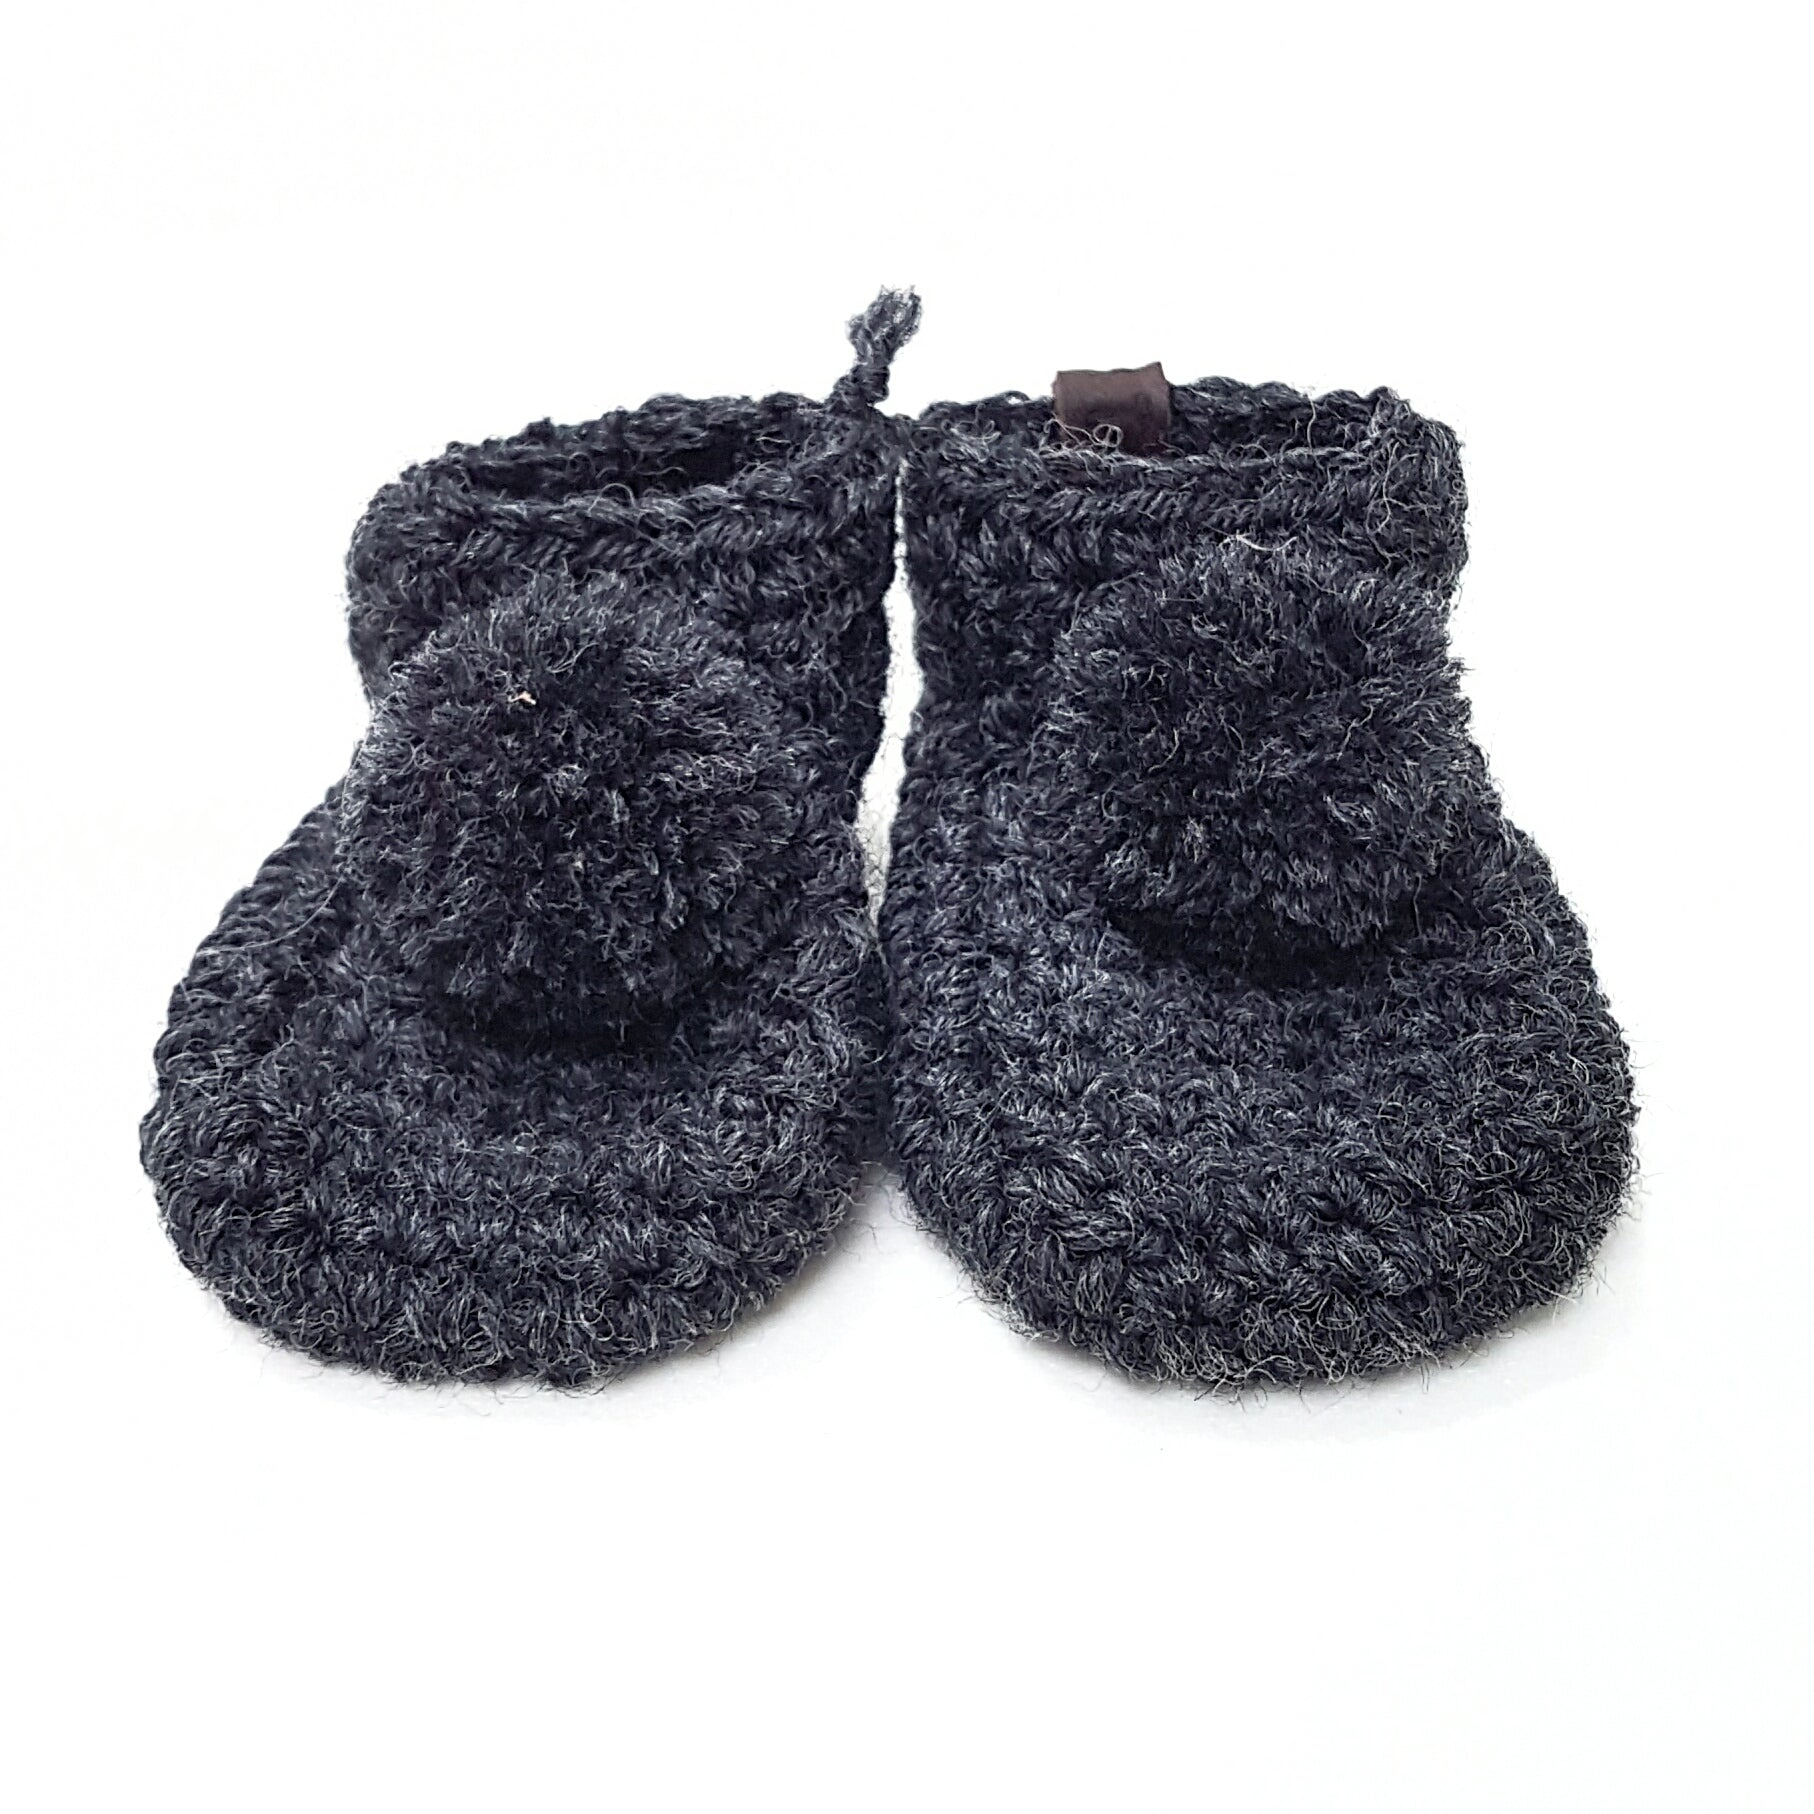 BABY BOOTIES | WOOL & LEATHER POMPON